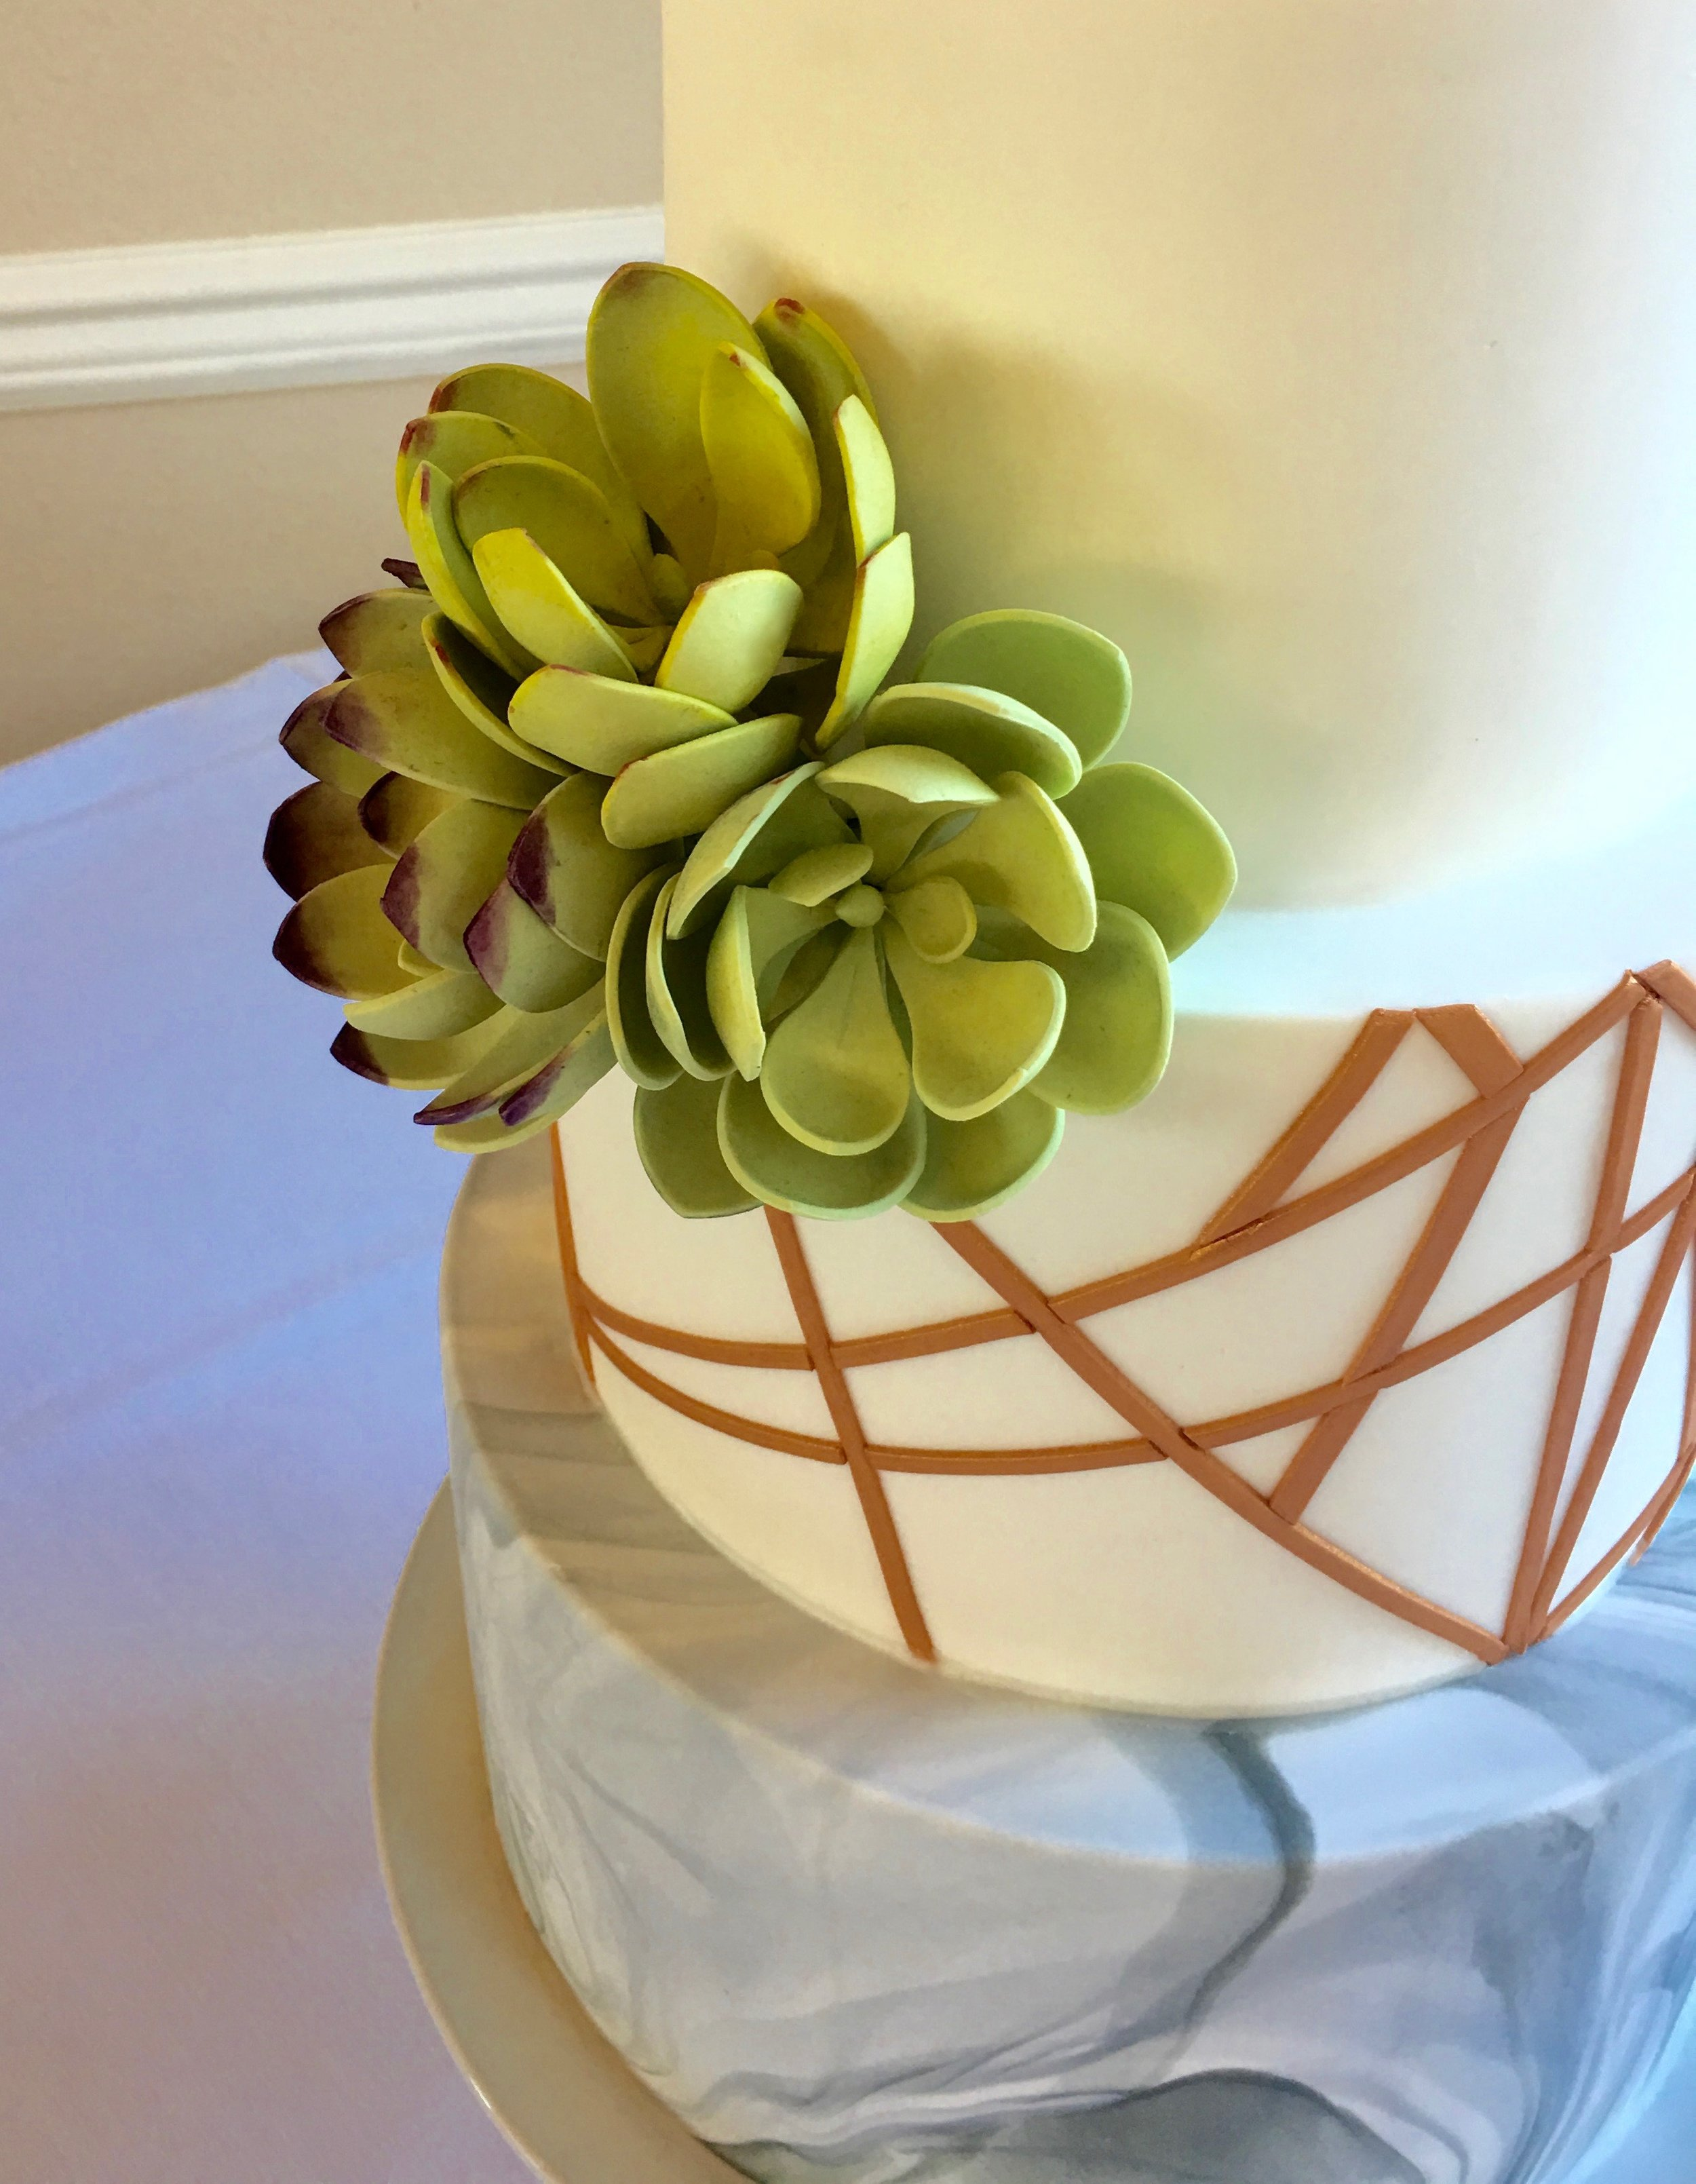 Sugar succulents on rose gold linework cake with marbled base tier. Image copyright Carla Schier.